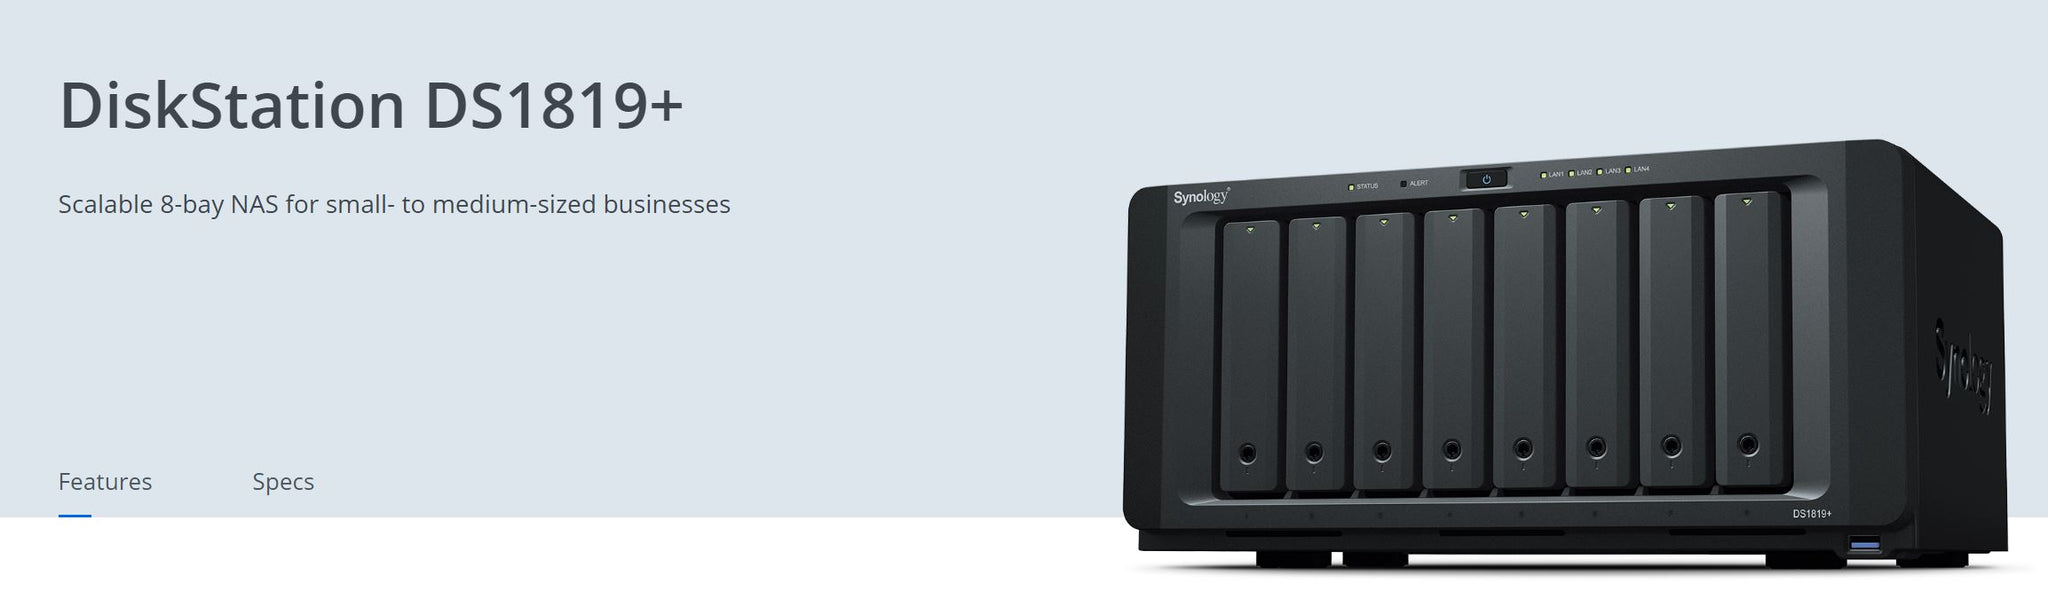 Synology DiskStation DS1819+ 8-Bay 3.5' Diskless 4xGbE NAS (Tower) , Intel Atom Quad Core 2.1GHz,4GB RAM,4xUSB3,2x eSATA, Scalable.3 year Wty